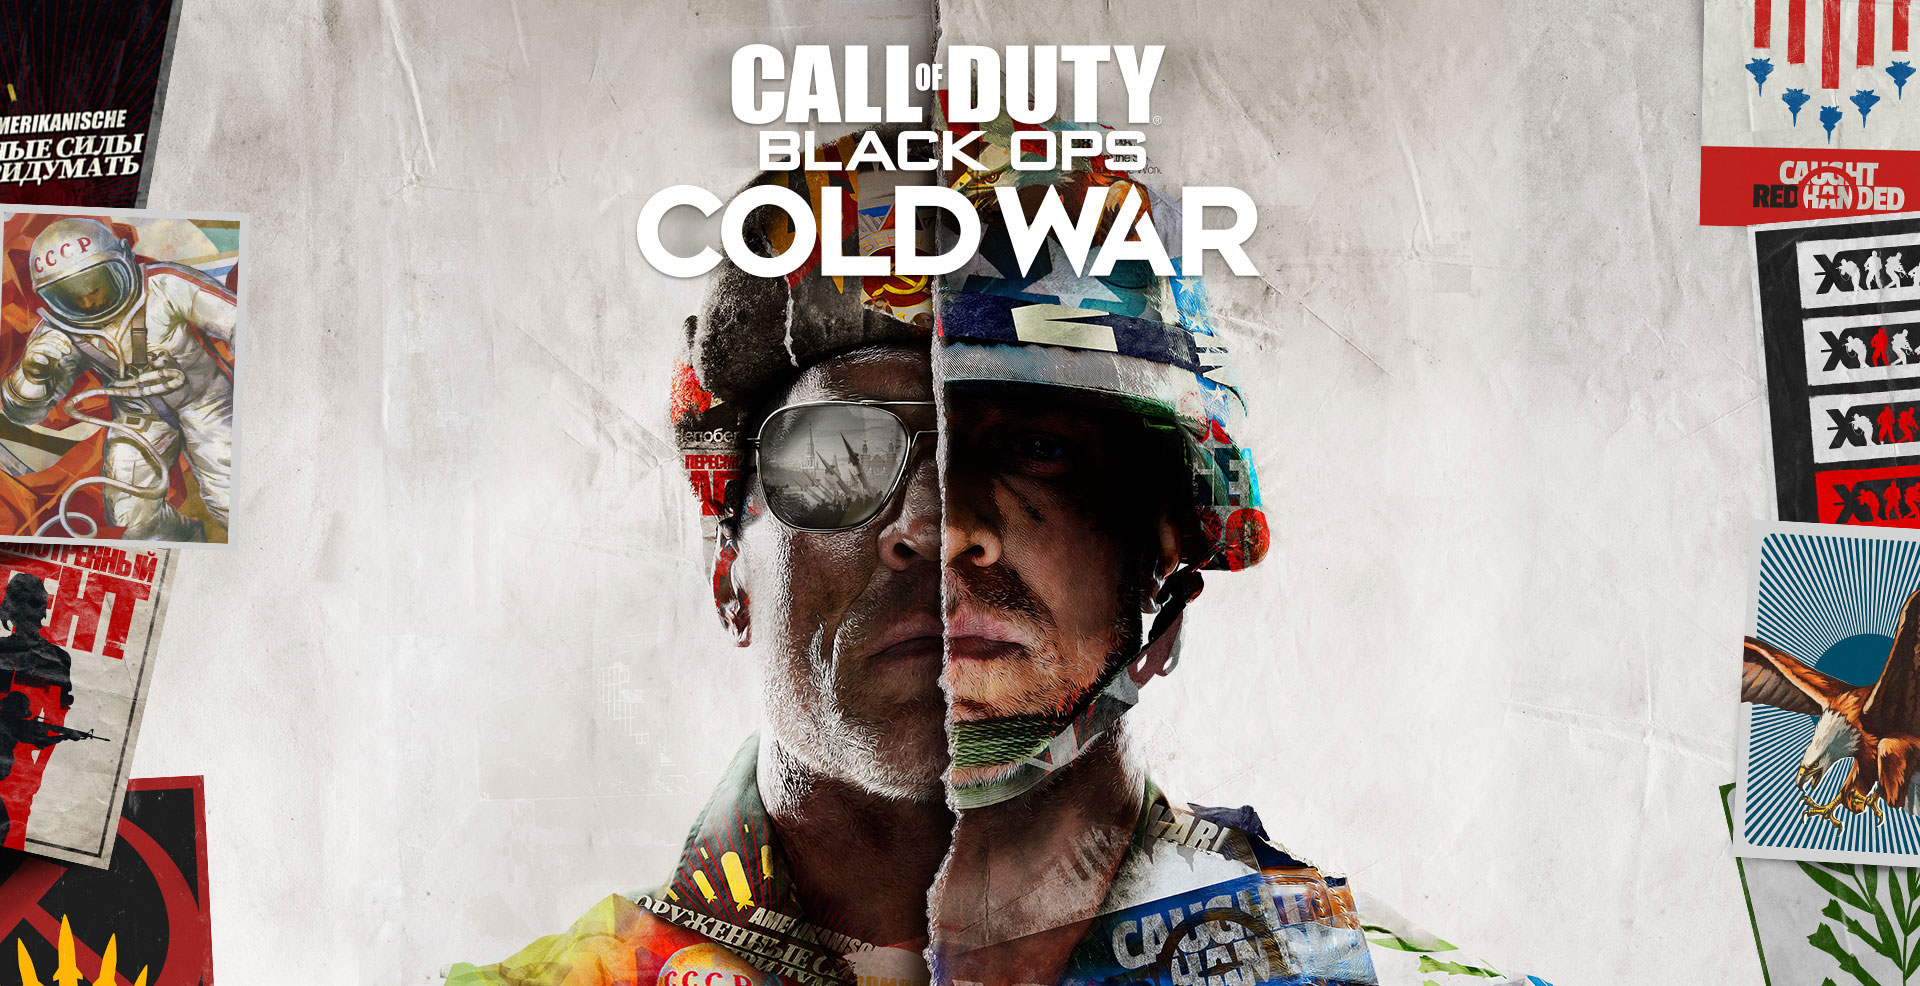 CALL OF DUTY®: BLACK OPS – COLD WAR